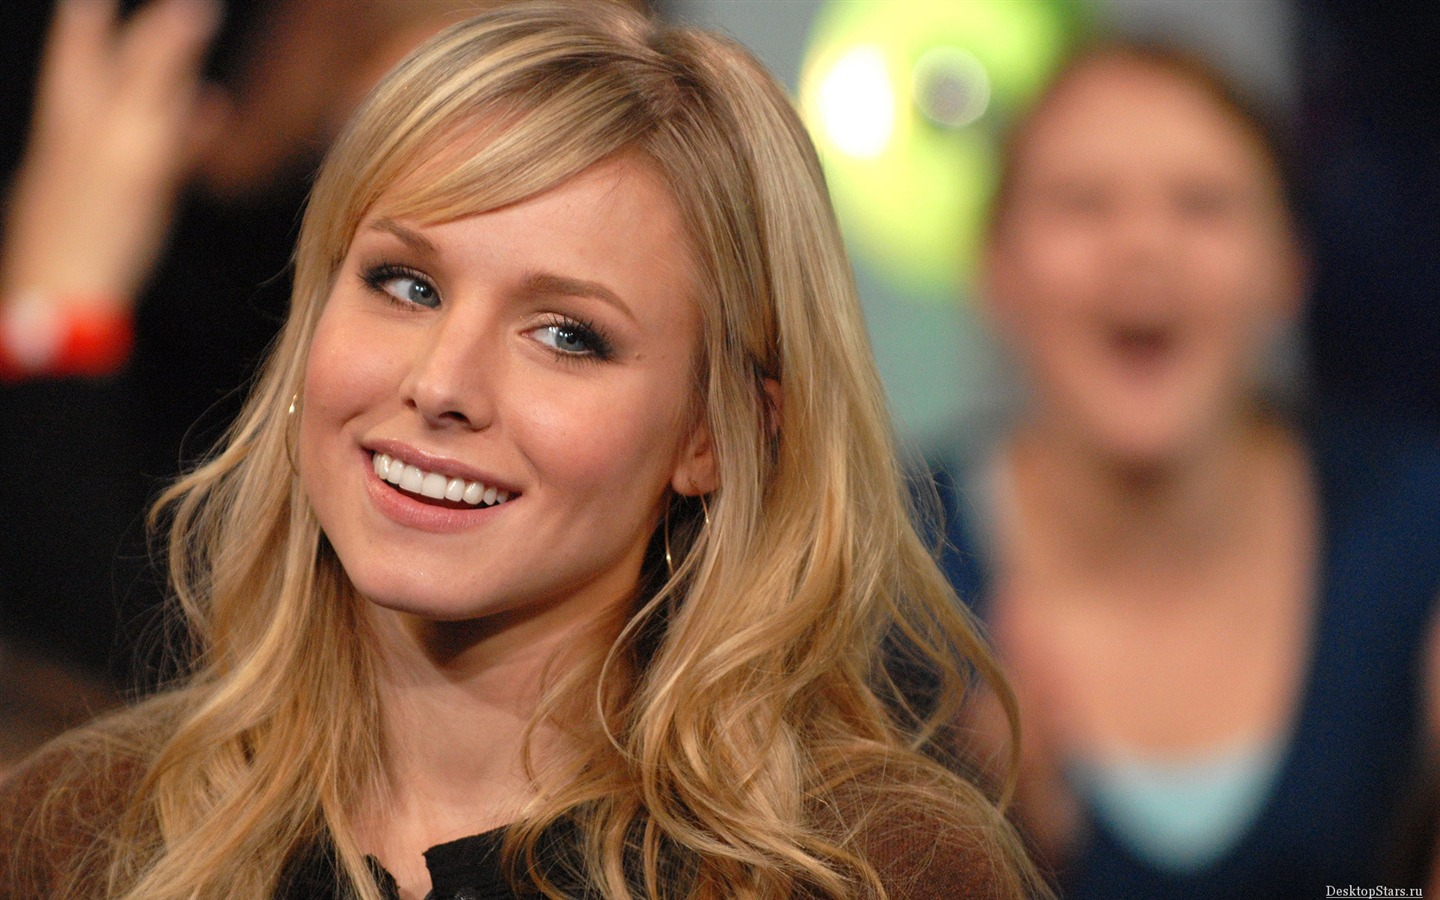 Kristen Bell #028 - 1440x900 Wallpapers Pictures Photos Images